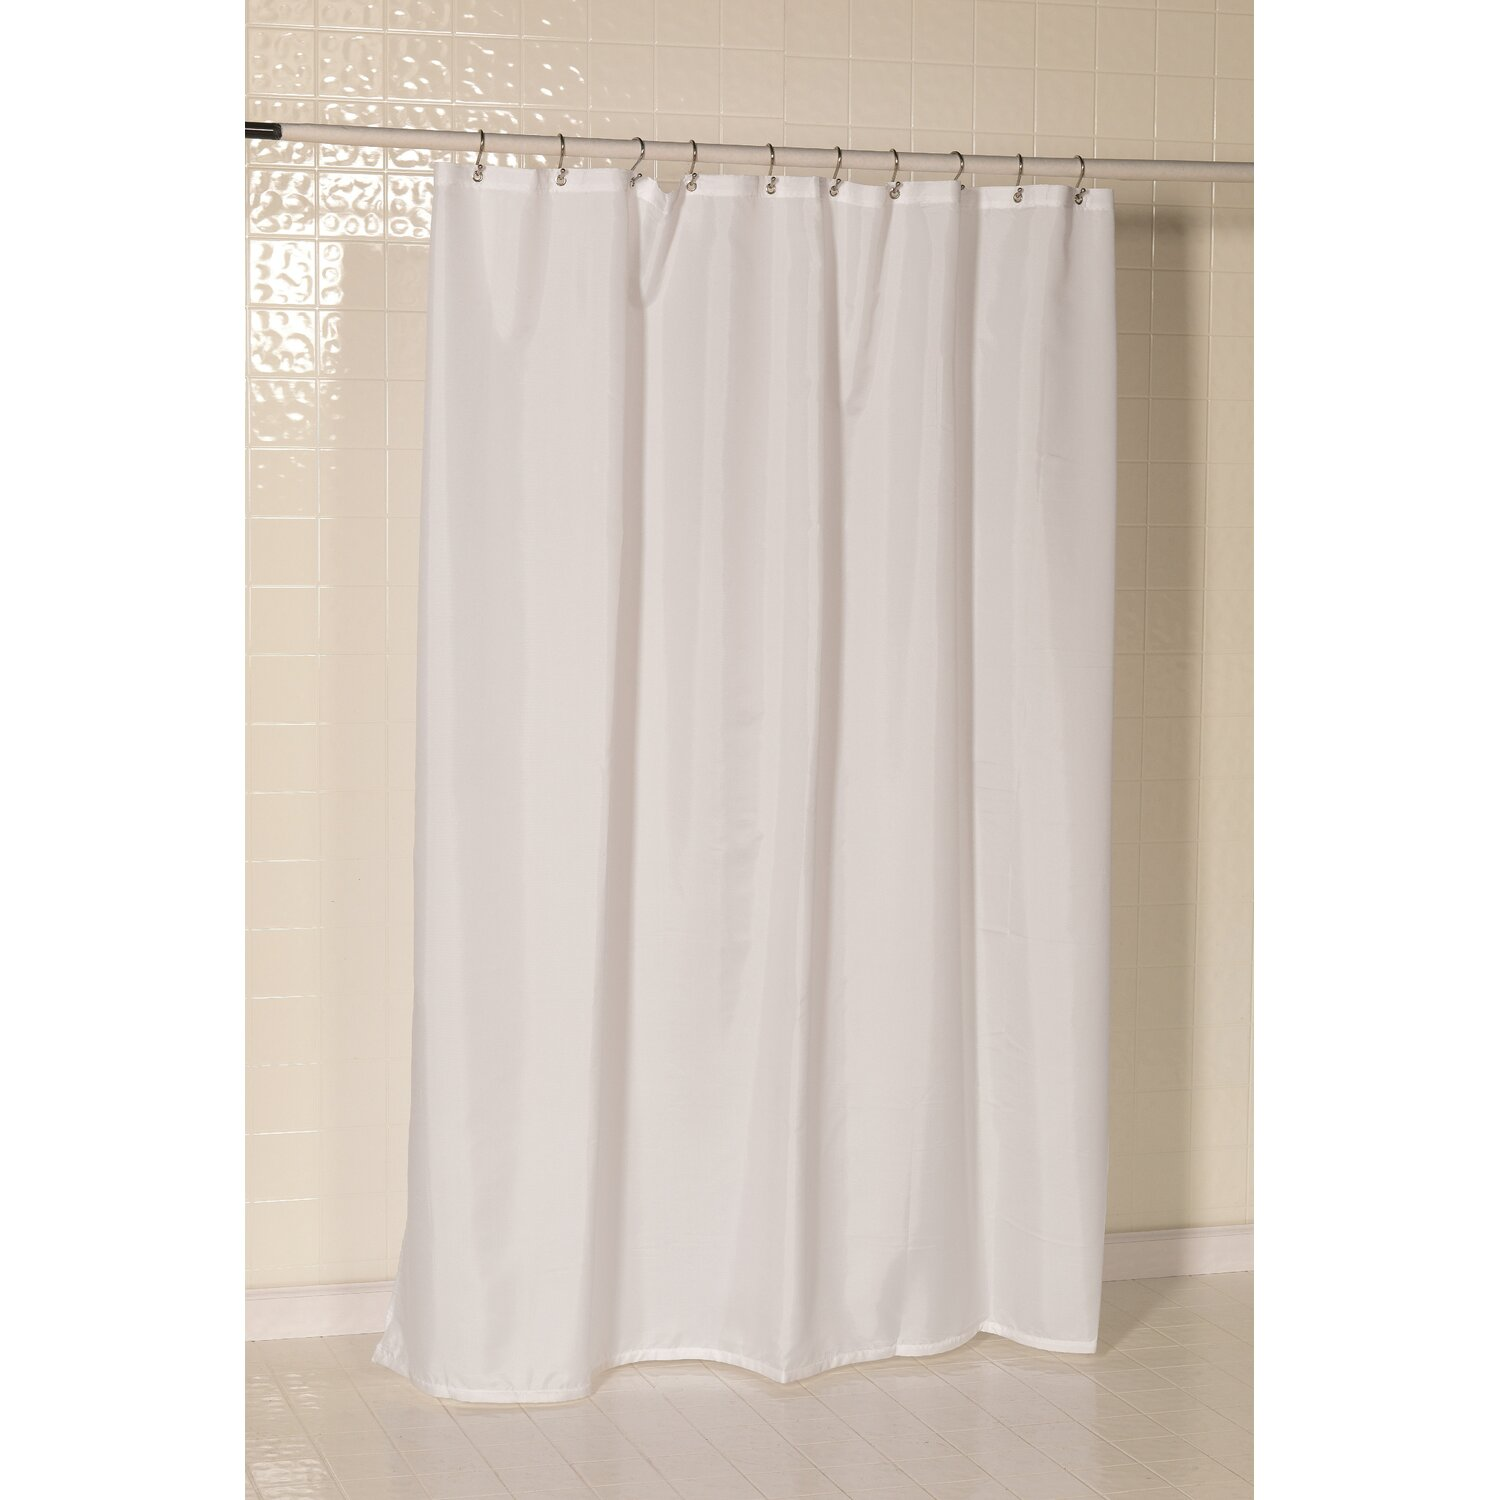 Carnation Home Fashions Shower Curtains Carnation Home Fashions Nylon